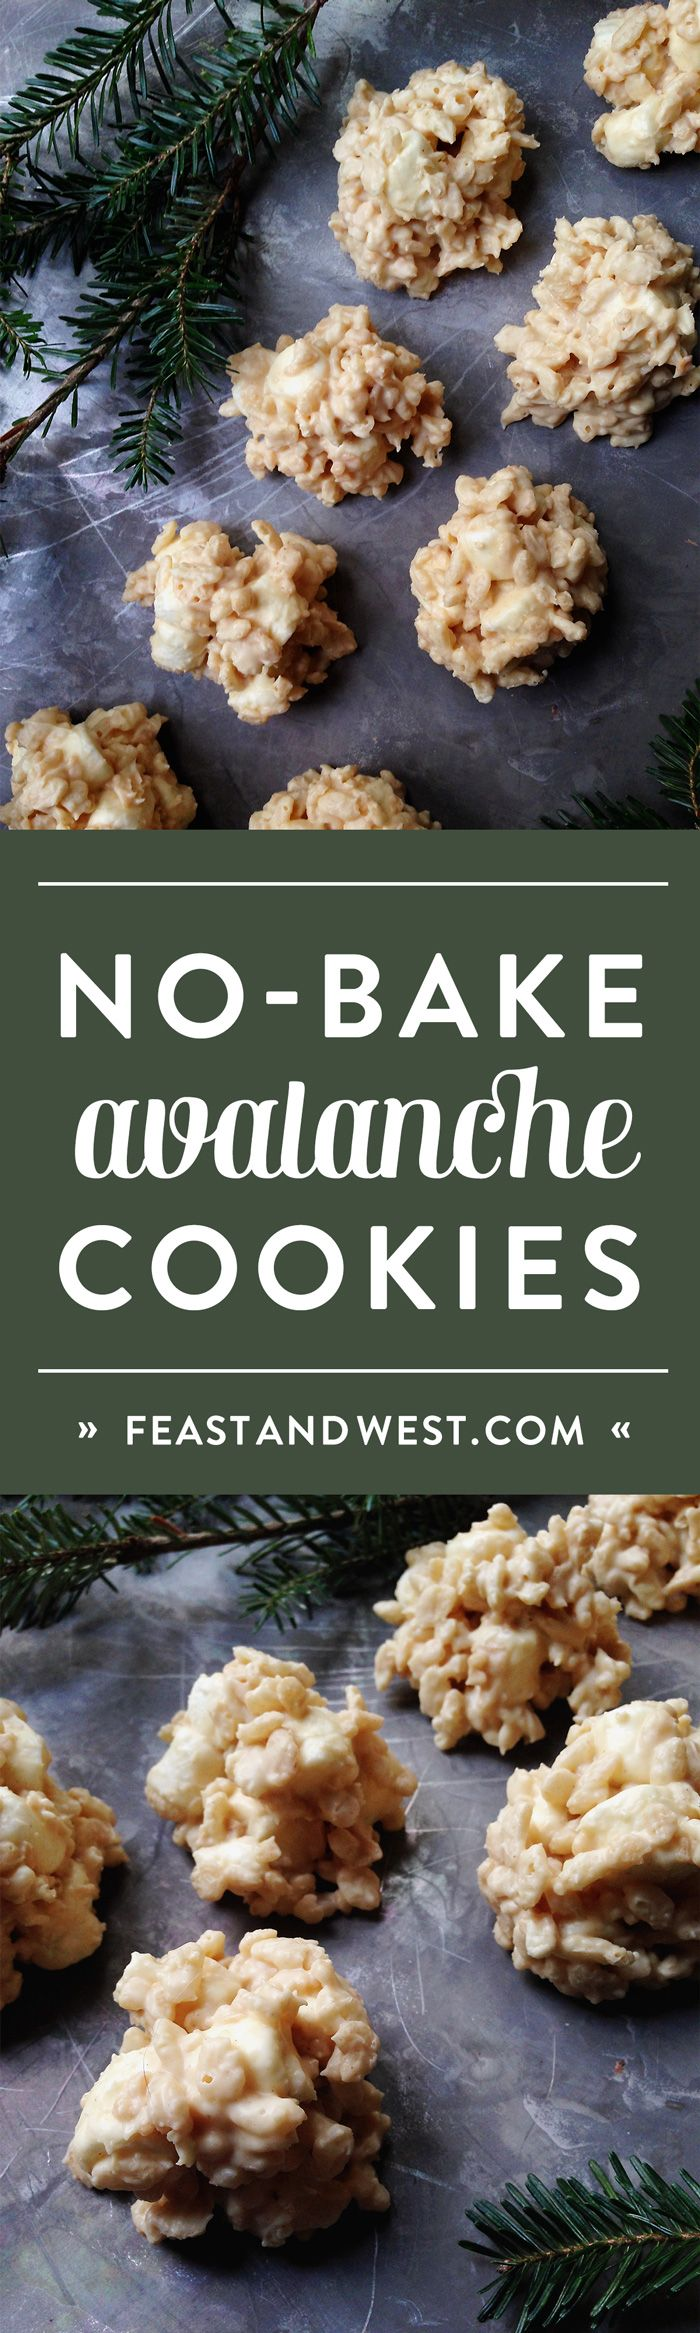 No-Bake Avalanche Cookies are a quick and easy holiday cookie you can make in a pinch. With just five ingredients, these Christmas cookies will be ready in a snap! (via feastandwest.com)